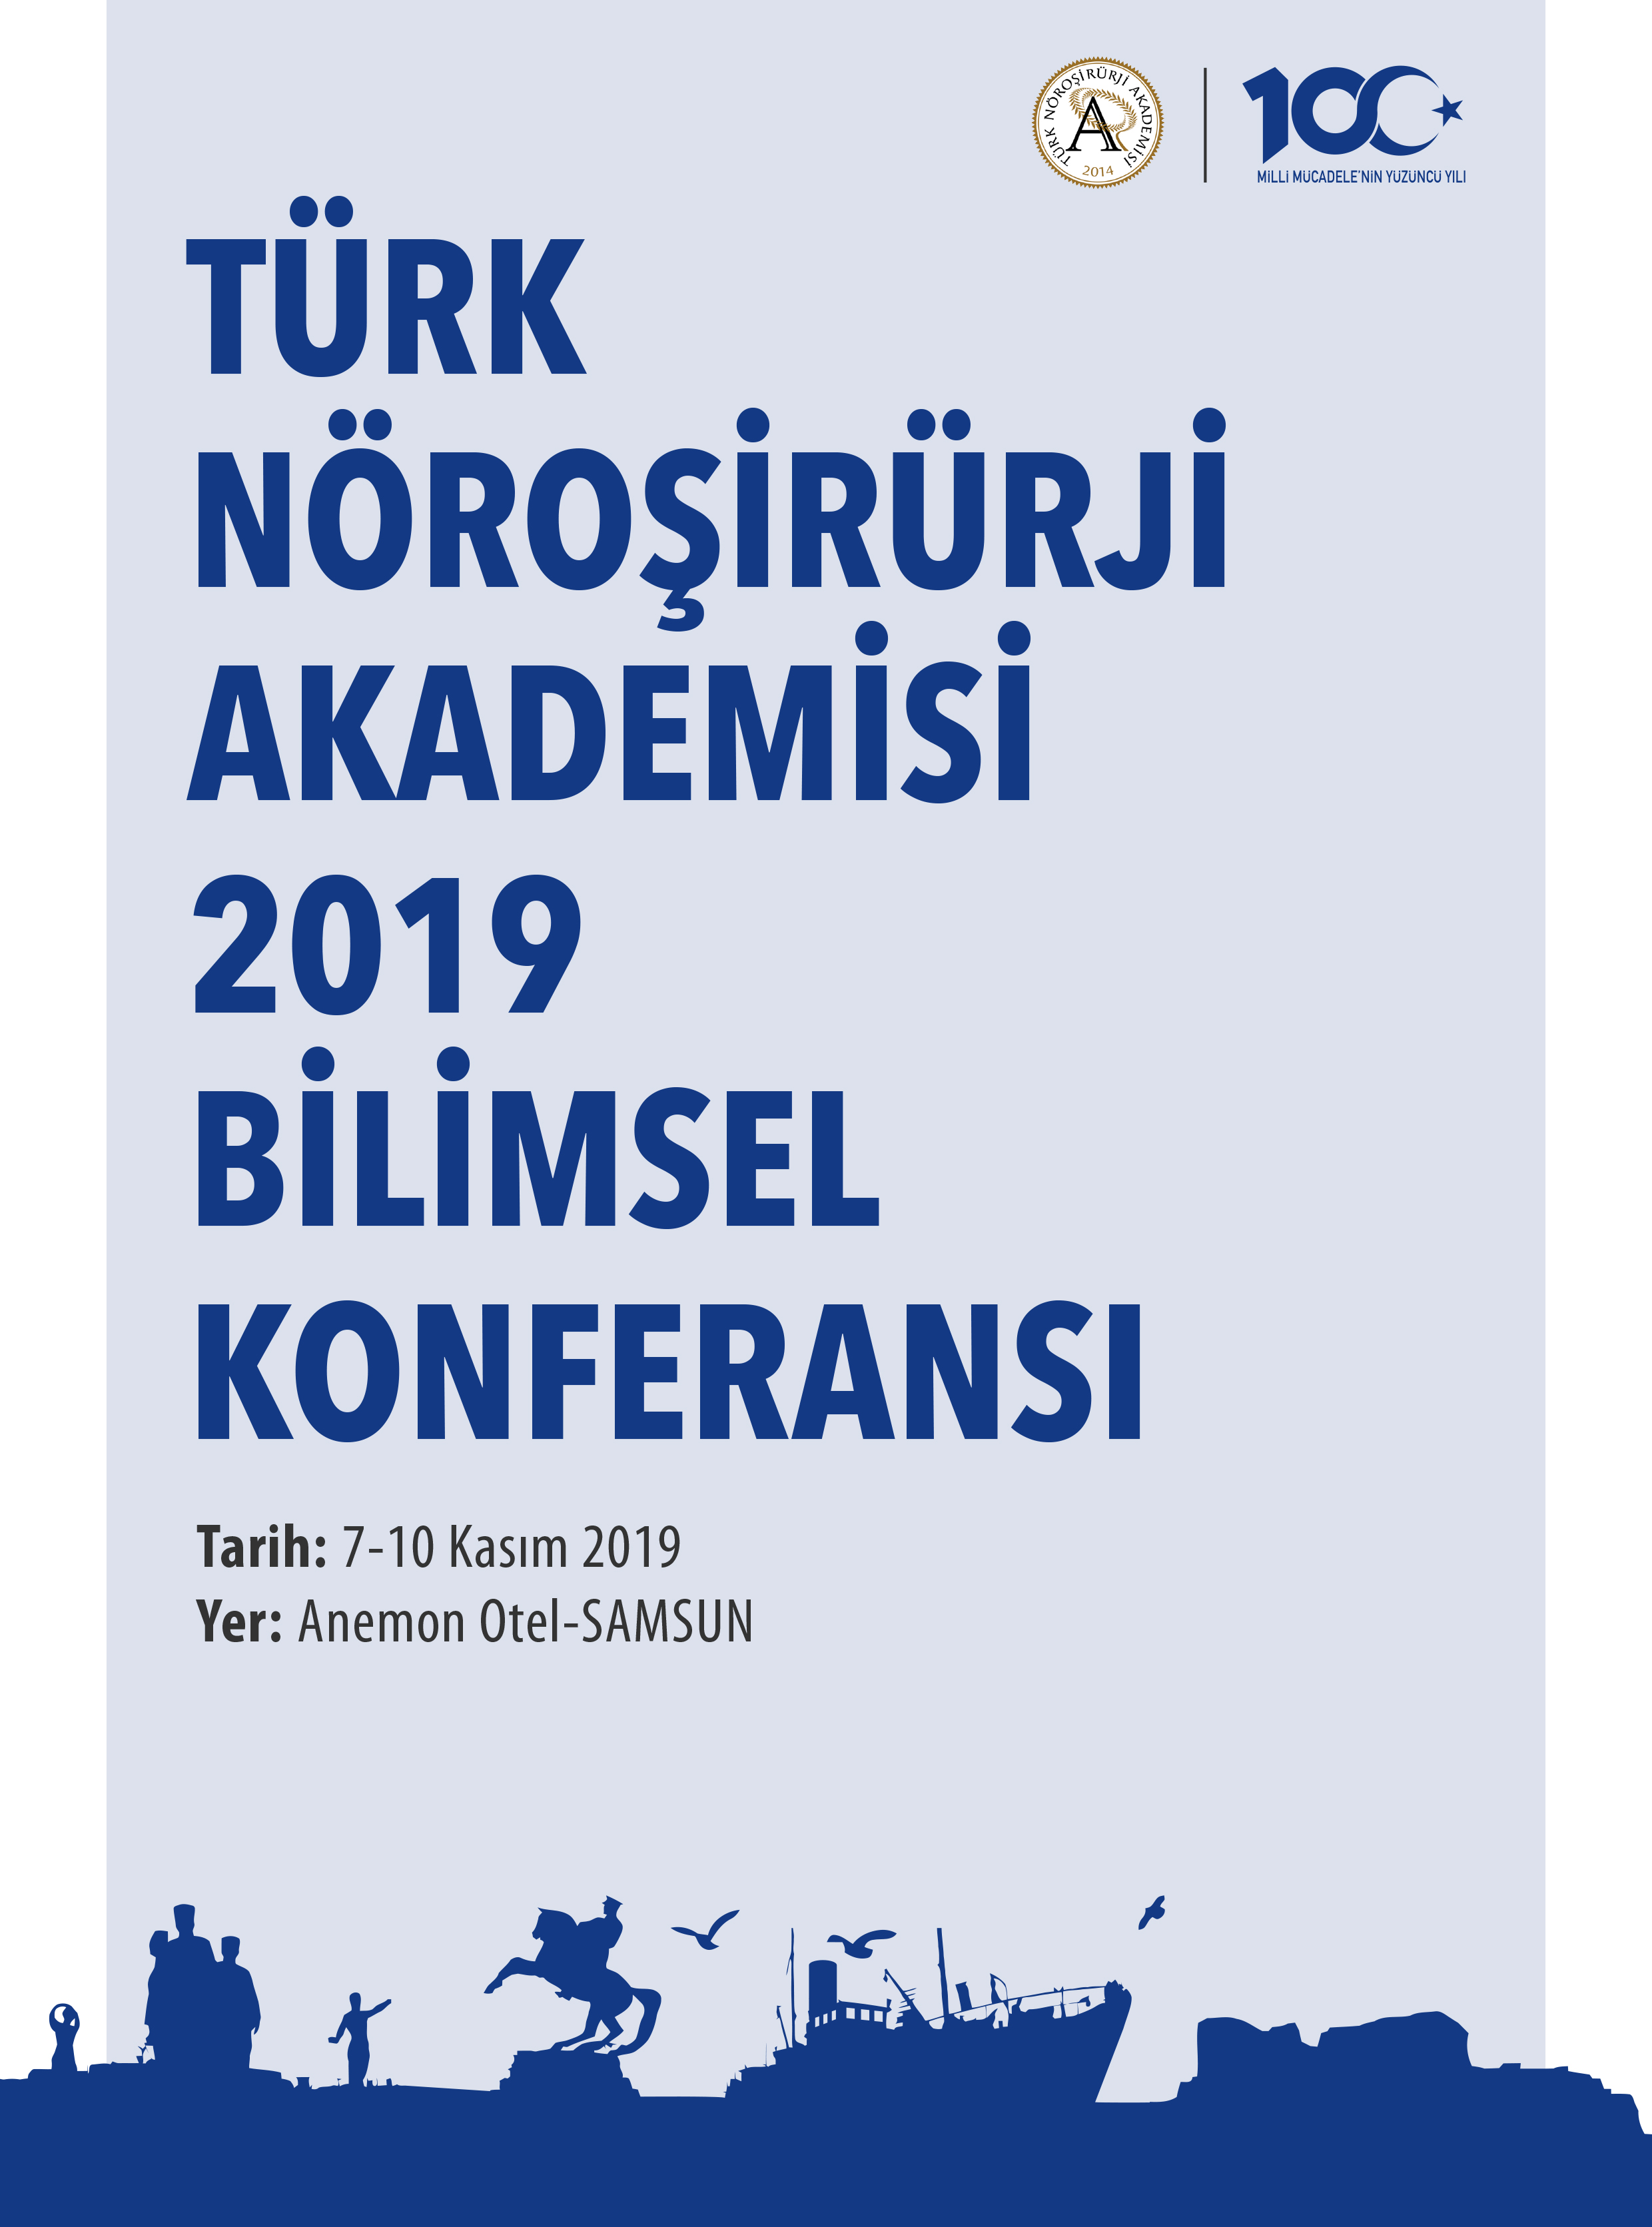 http://www.omu.edu.tr/sites/default/files/tna-konferans-2019-11.jpg